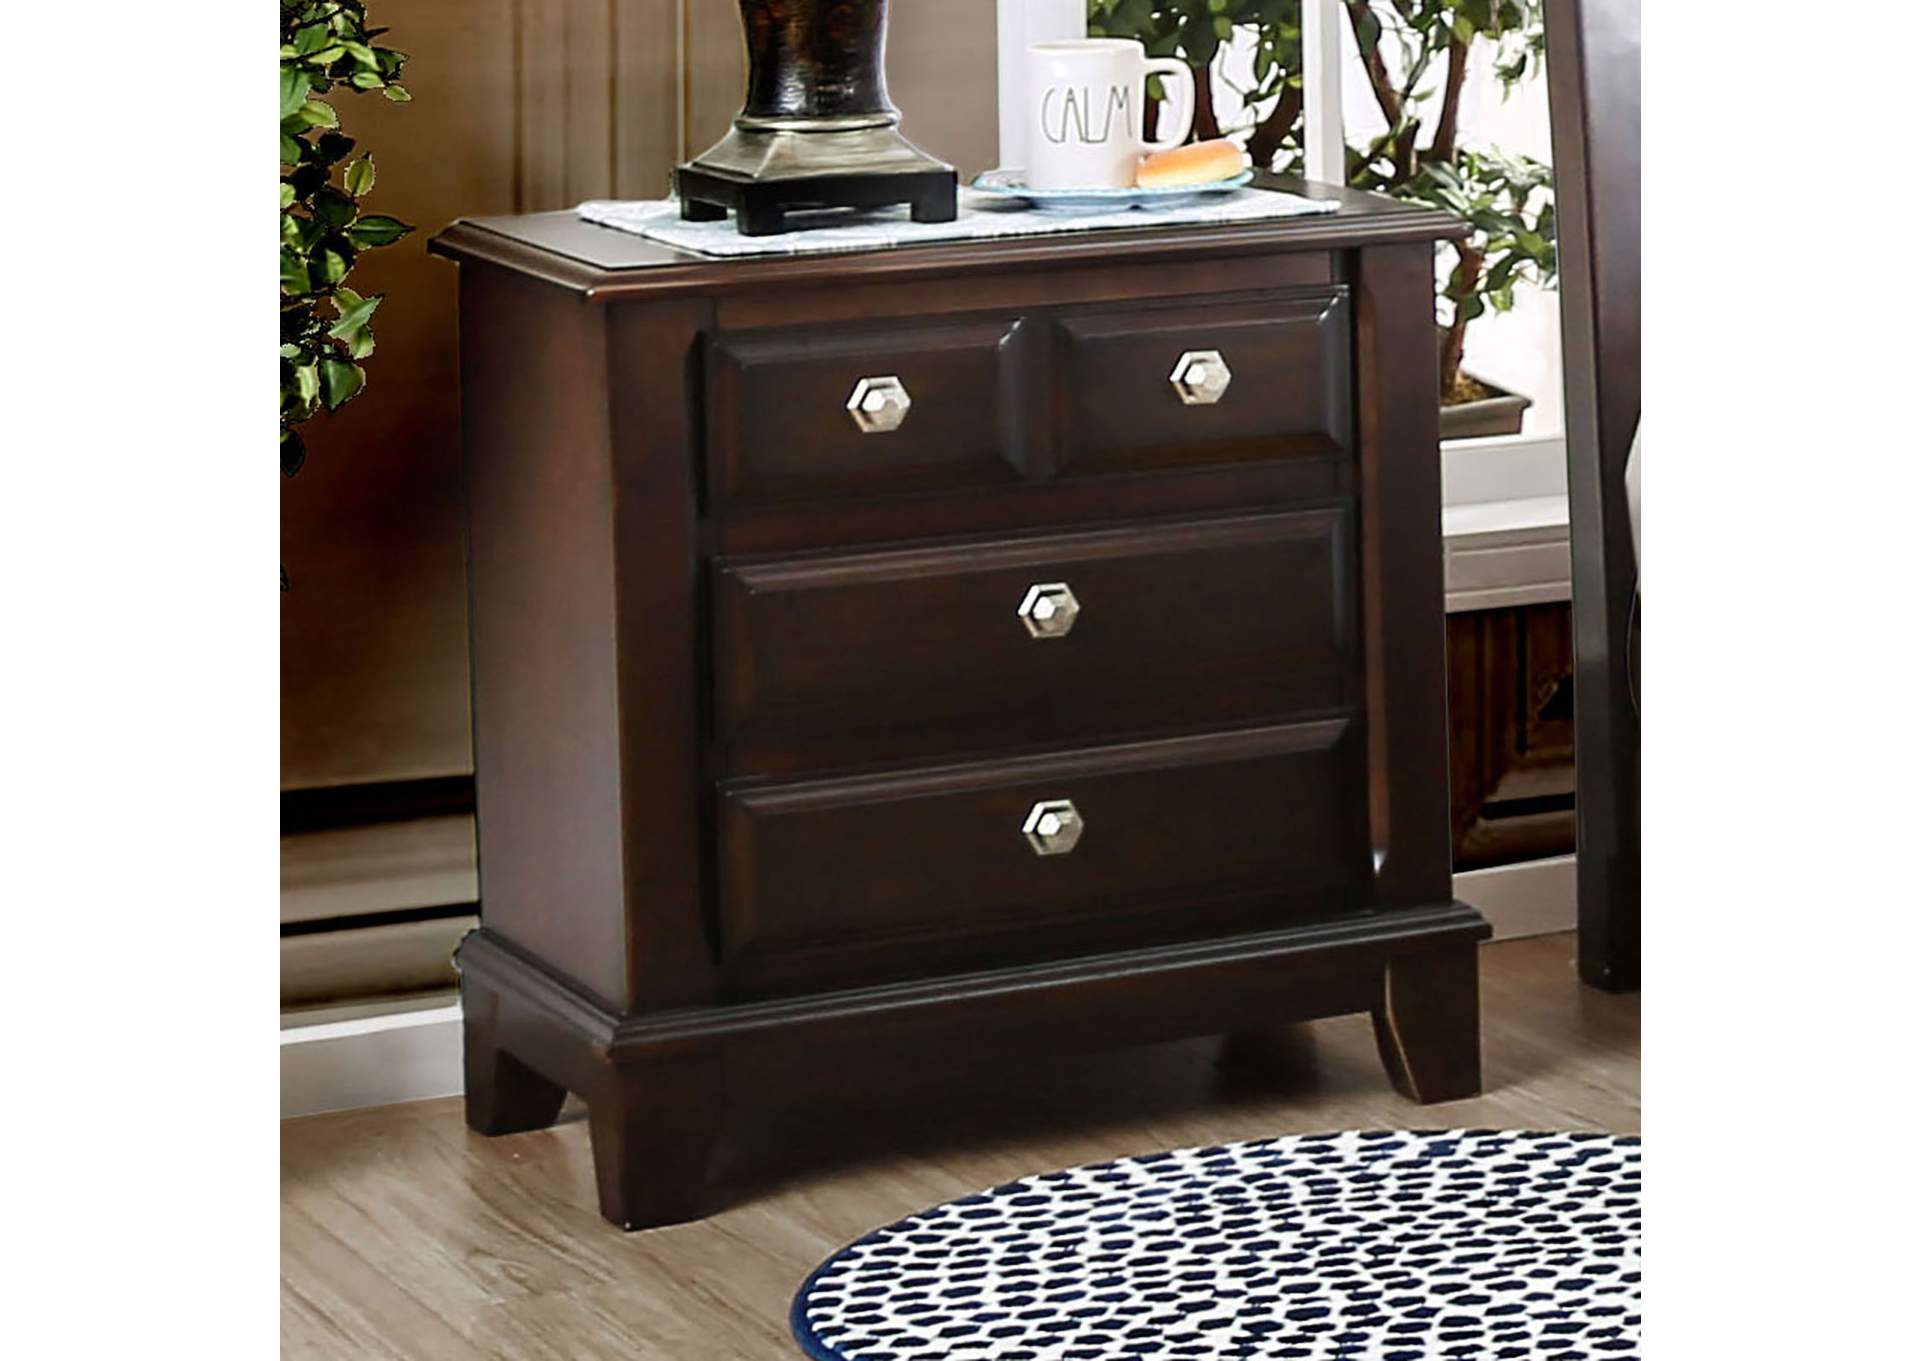 Litchville Brown Cherry Nightstand,Furniture of America